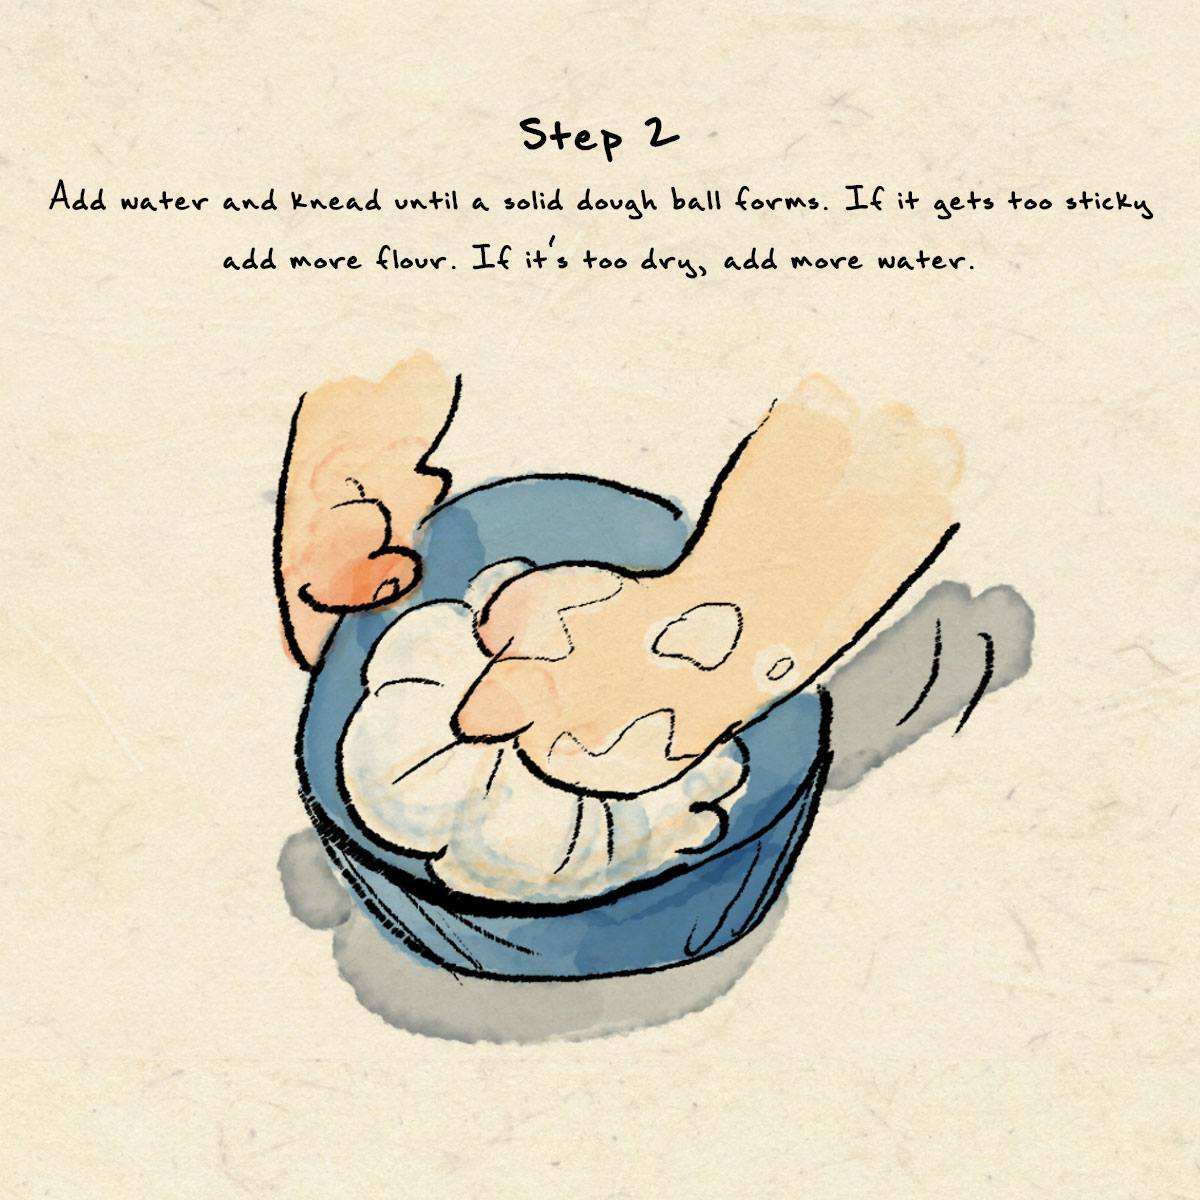 Step 2 in Dumpling Recipe